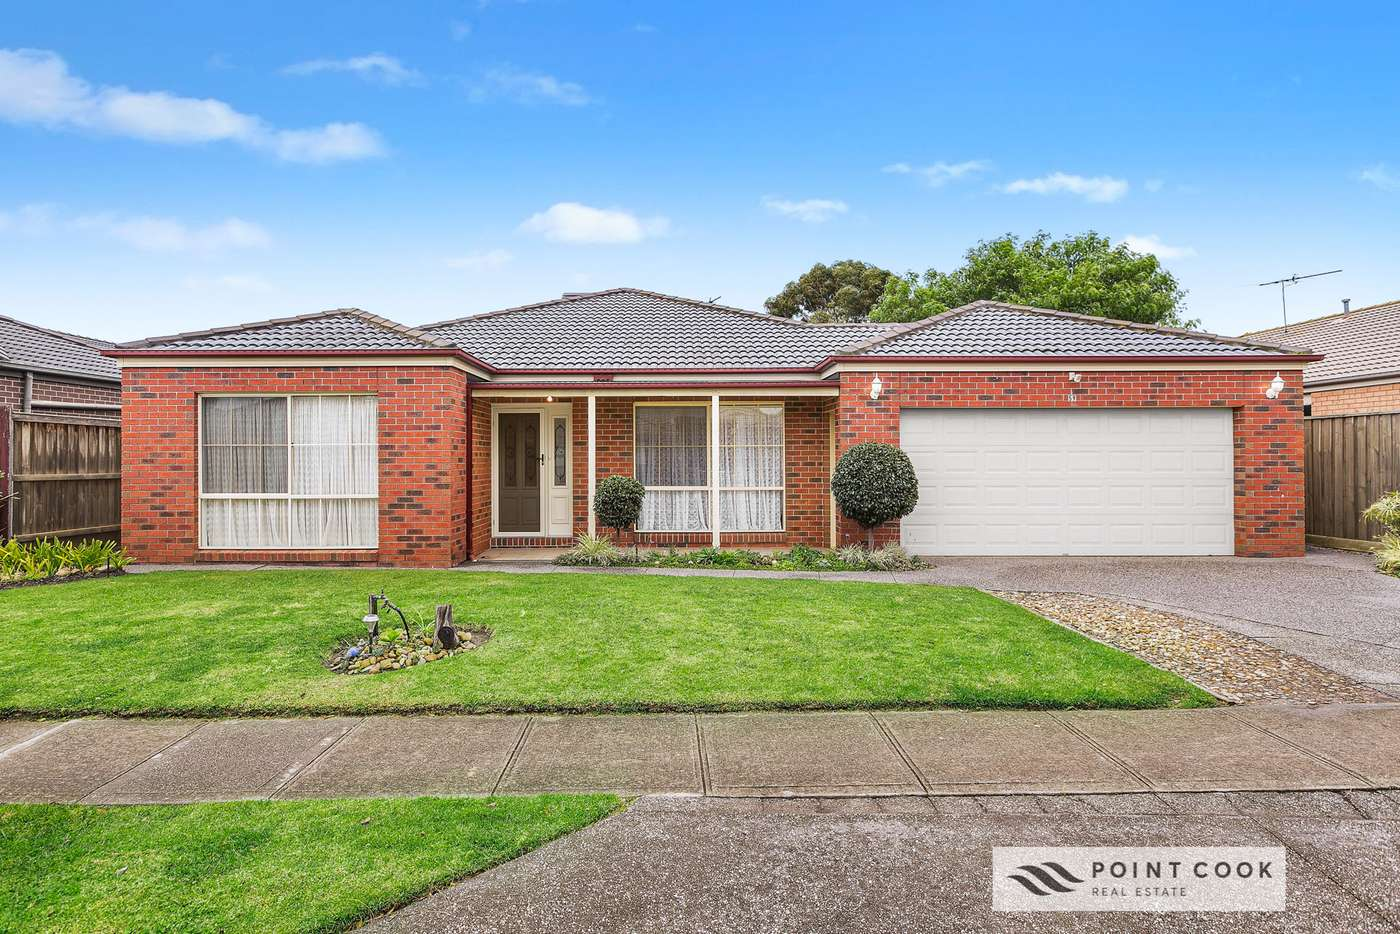 Main view of Homely house listing, 59 Ladybird Crescent, Point Cook VIC 3030